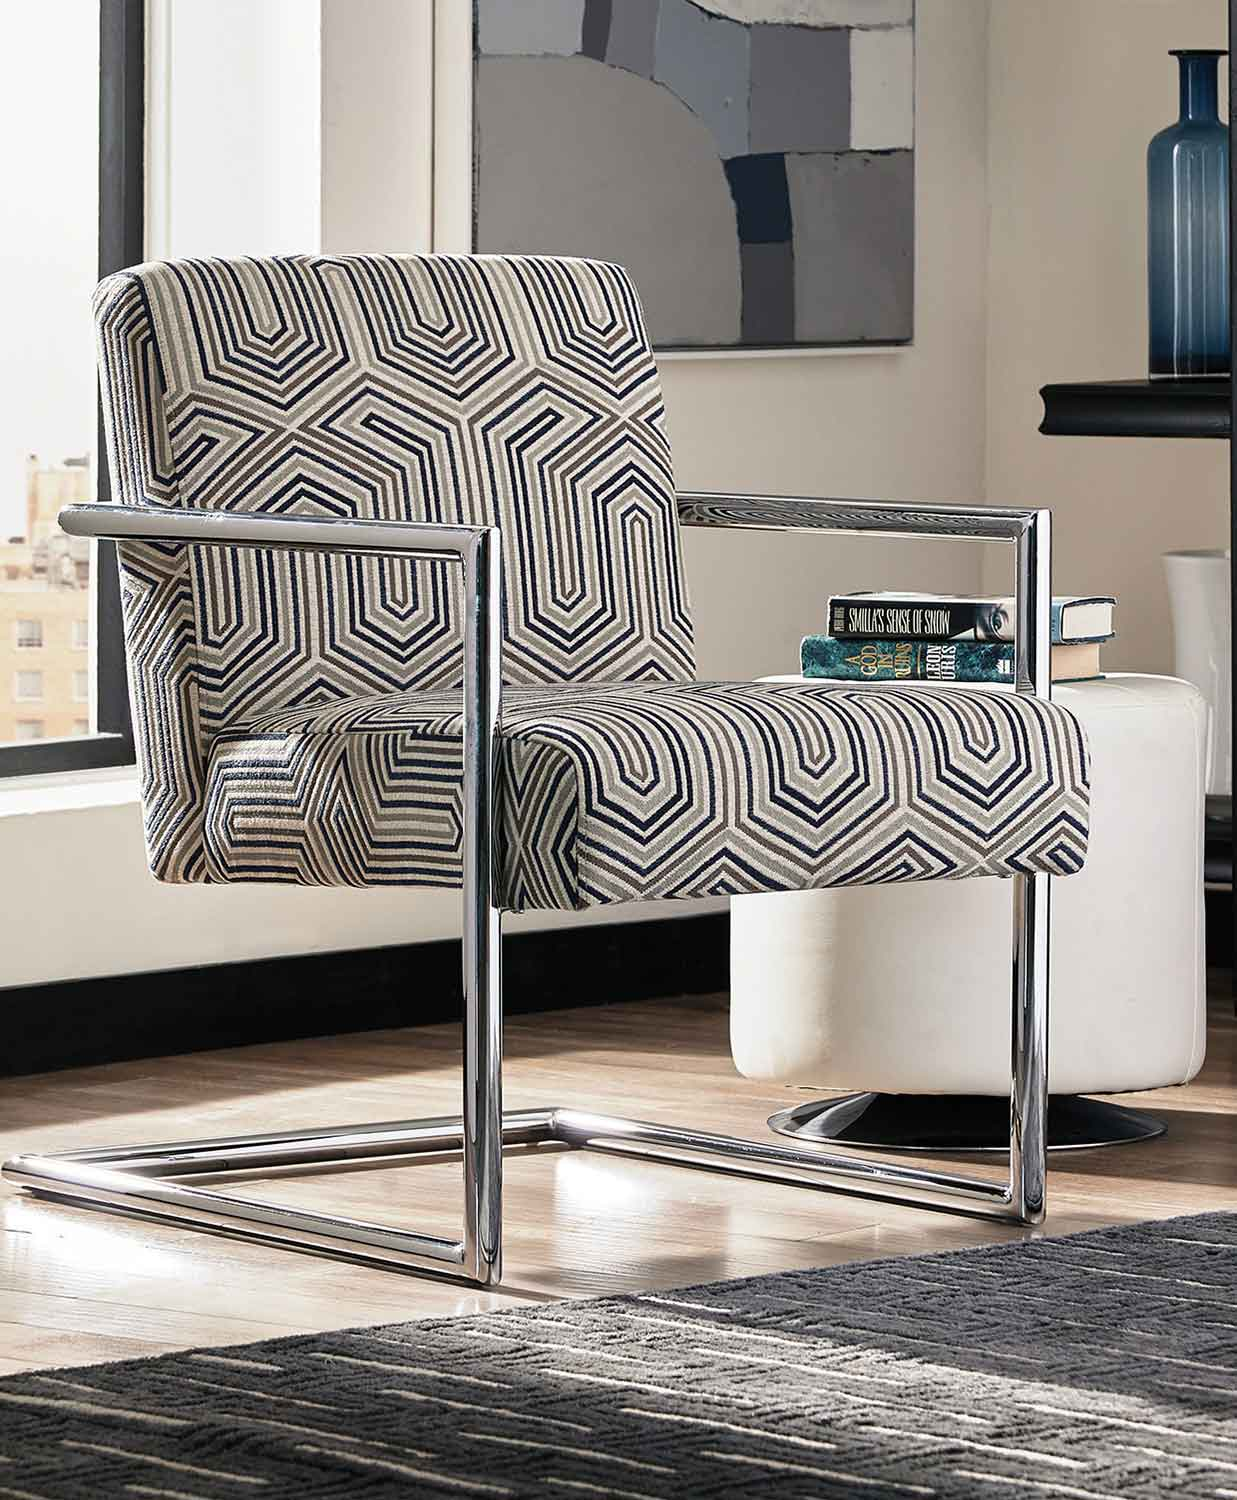 Coaster 903402 Accent Chair - Grey/Blue/Chrome